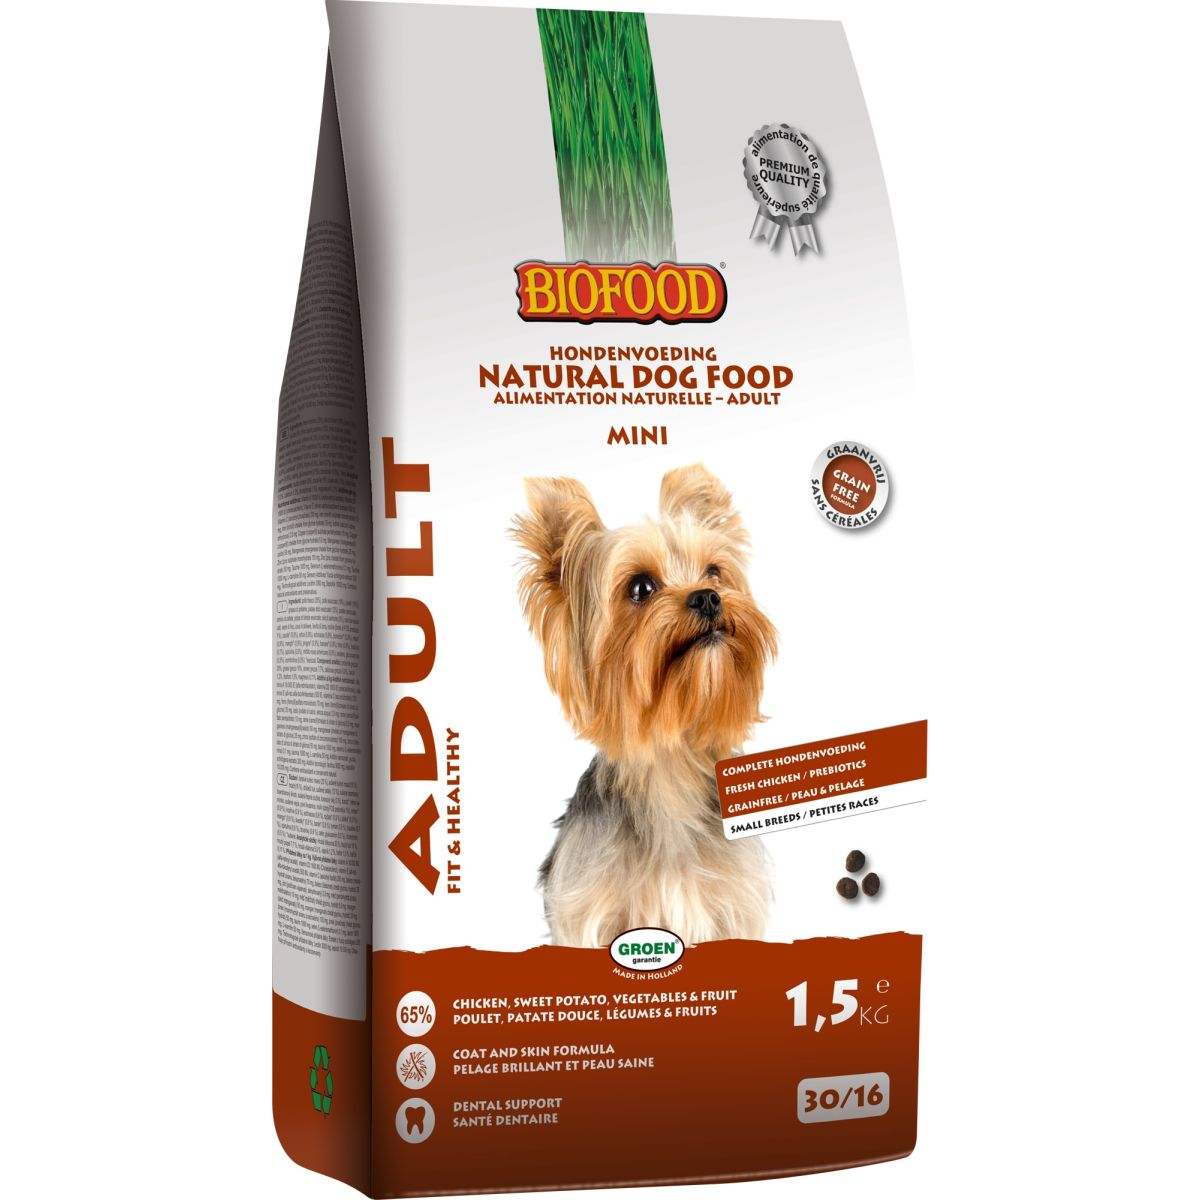 BF ADULT SMALL BREED 1.5KG N 00001